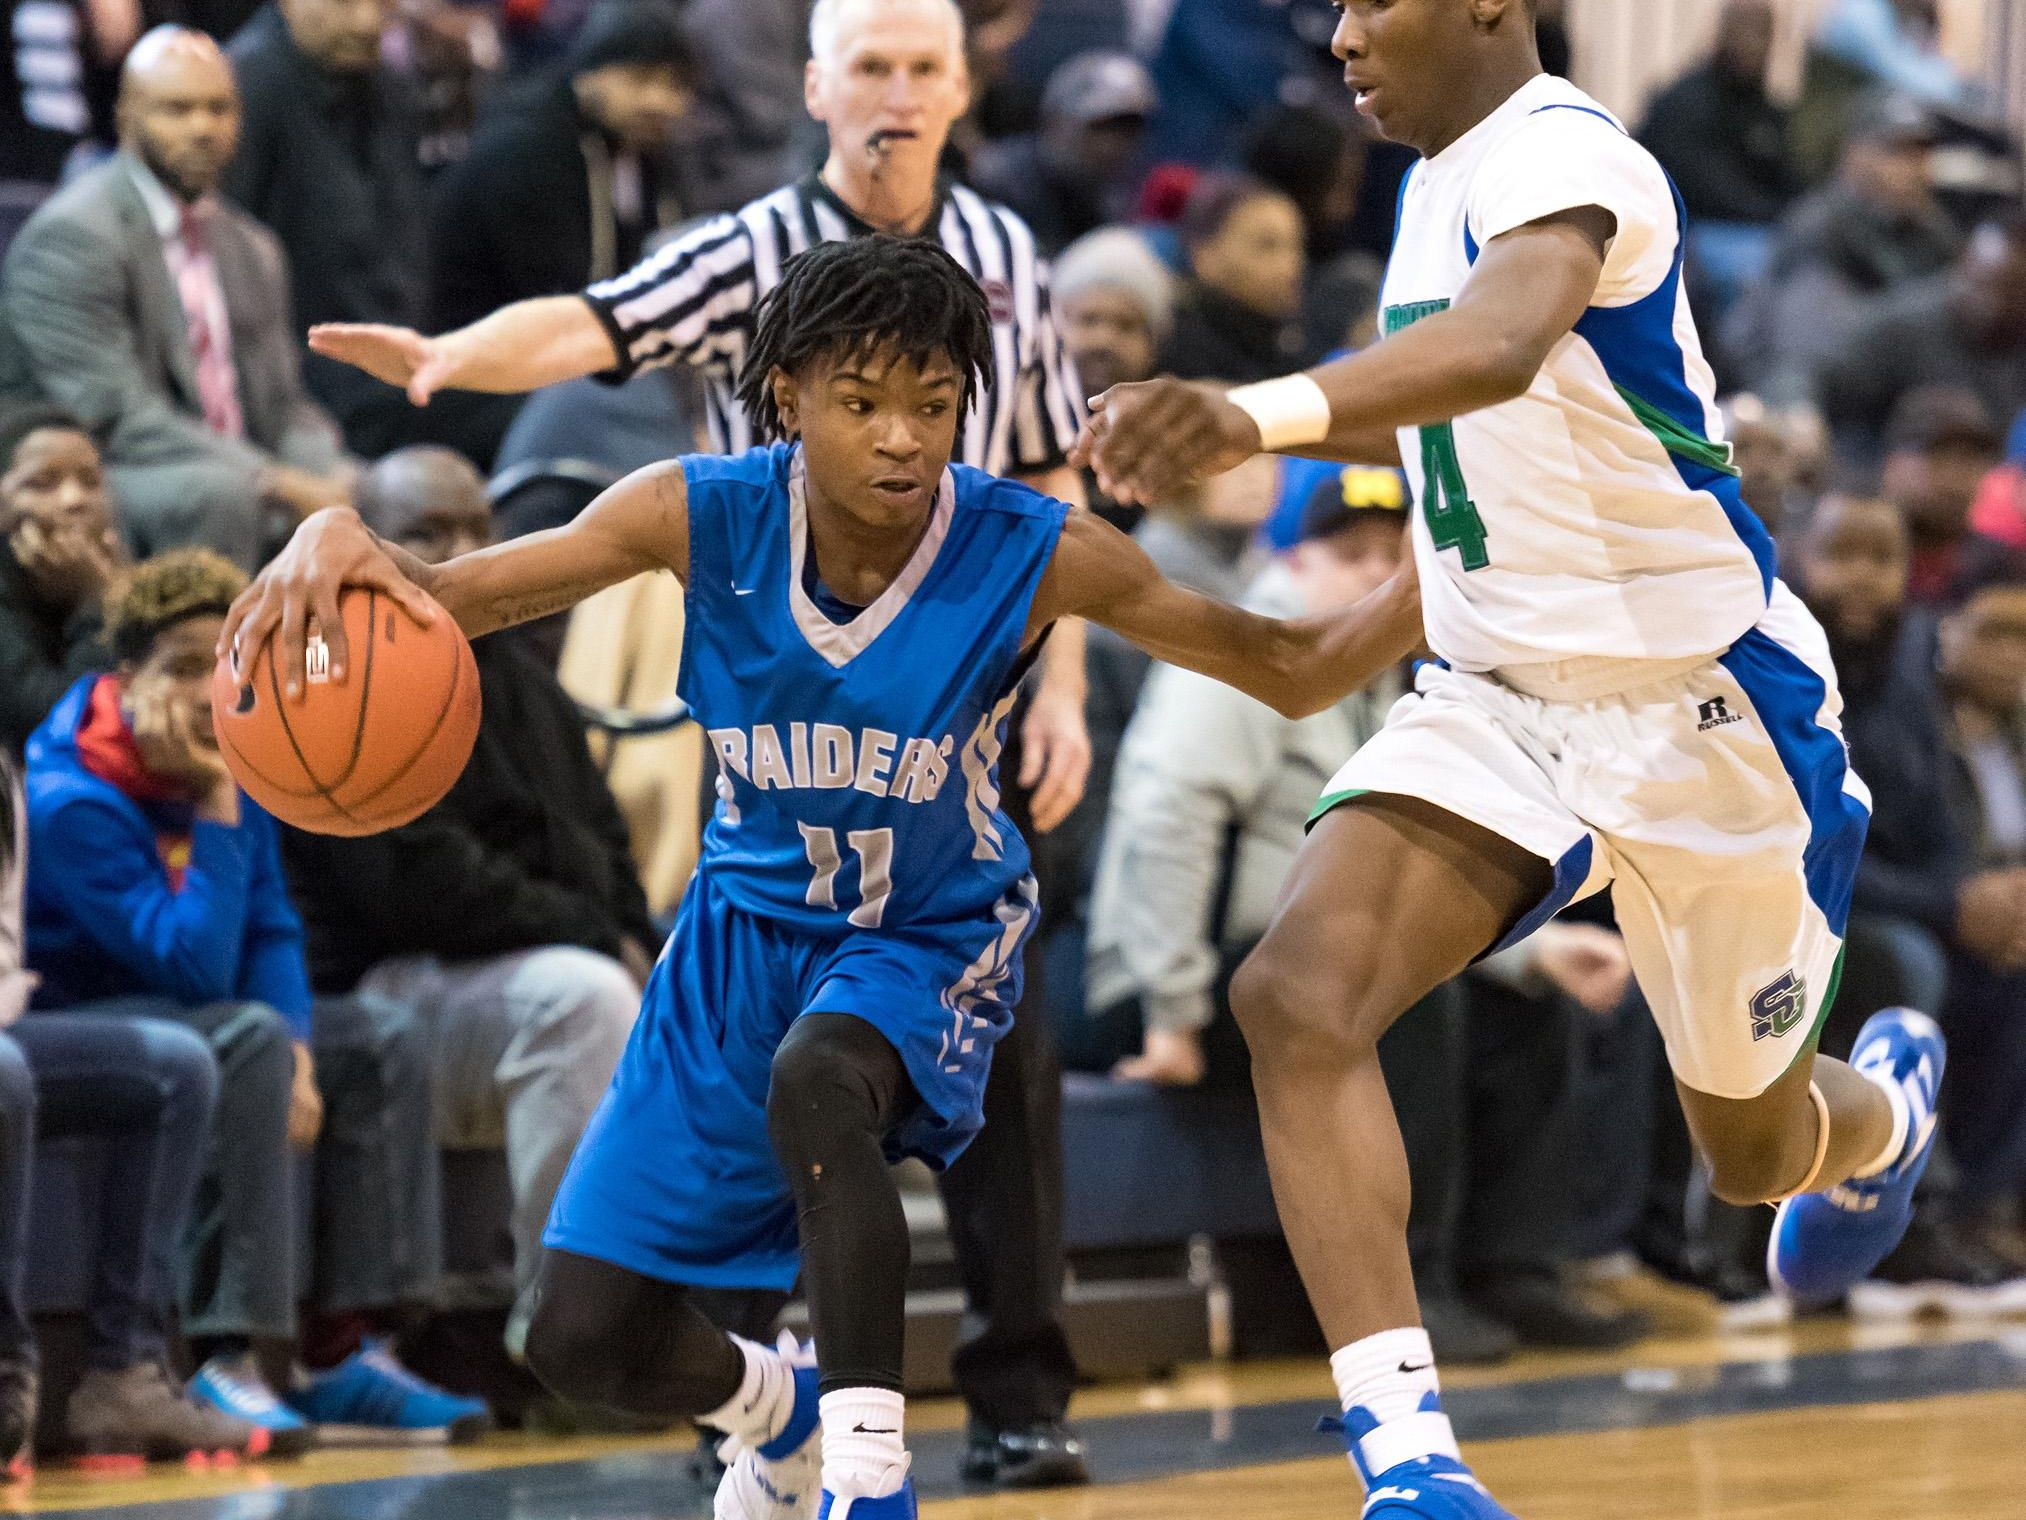 Brandon Palmer of Woodbridge takes the ball down the court past the defense of Prosper Tarley of St. Georges Technical in boys basketball at St. Georges Technical High School in Middletown on Saturday afternoon.